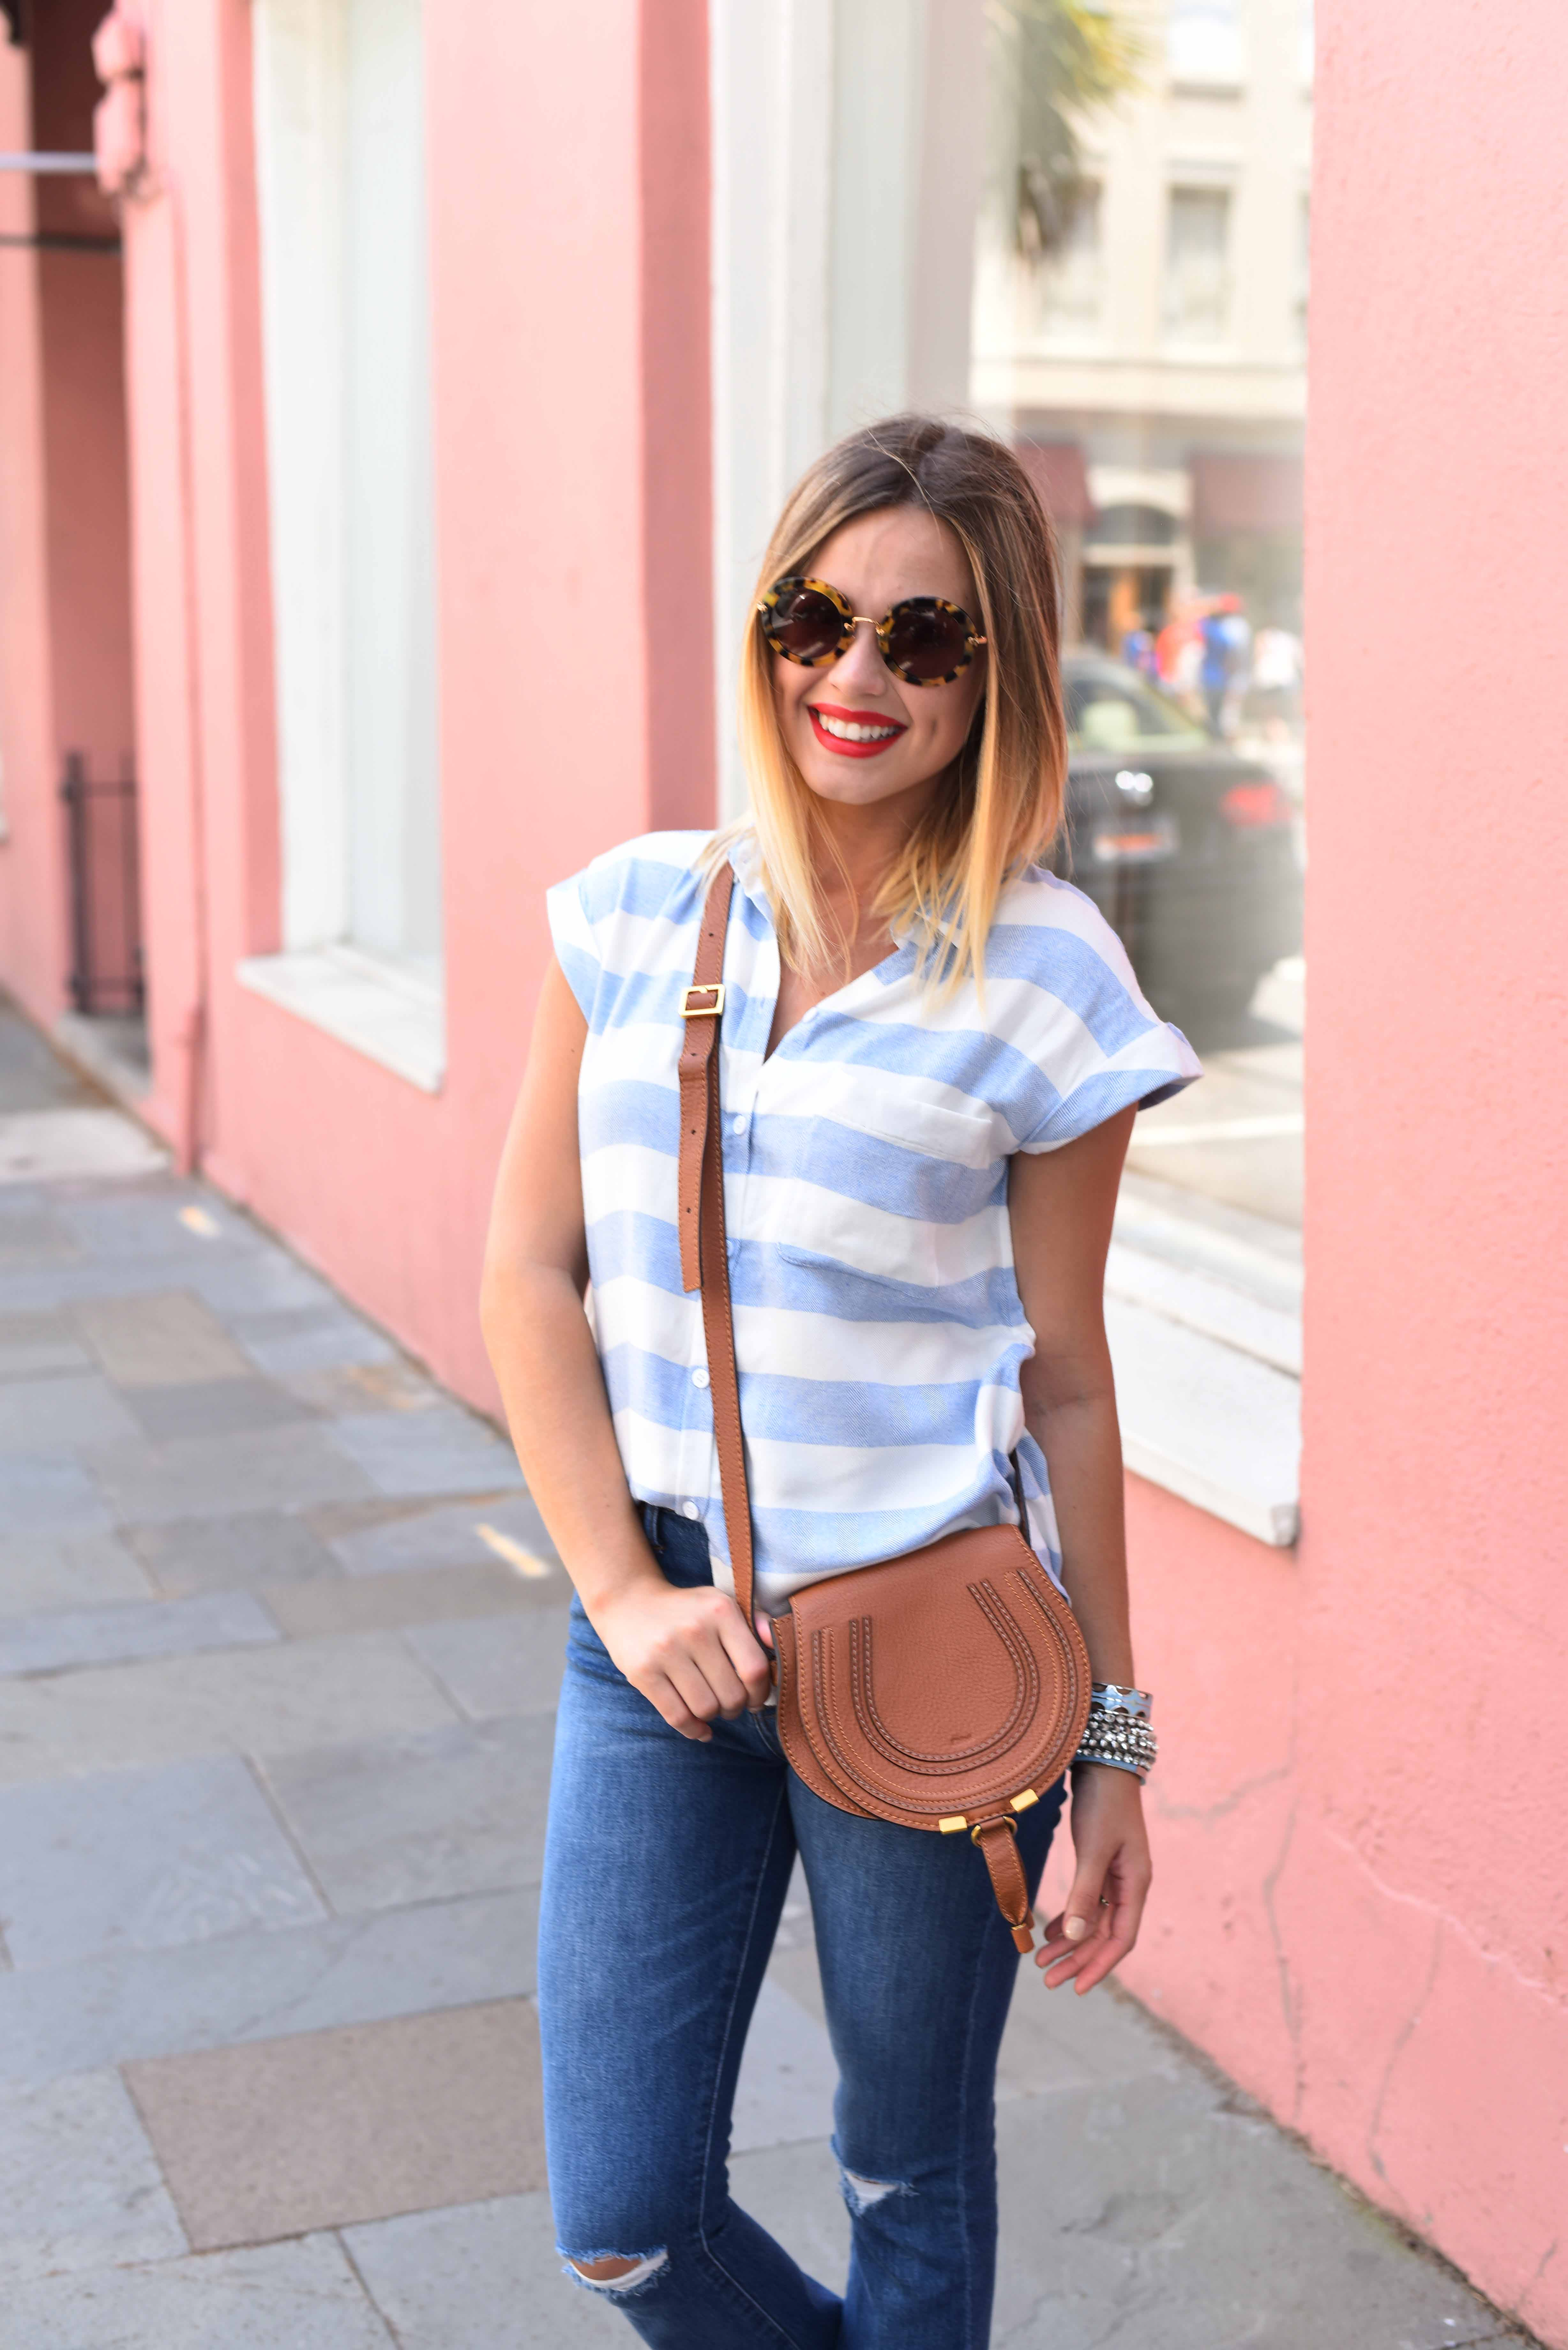 Cropped Denim look | Summer casual look | Tee and jeans look | Uptown with Elly Brown